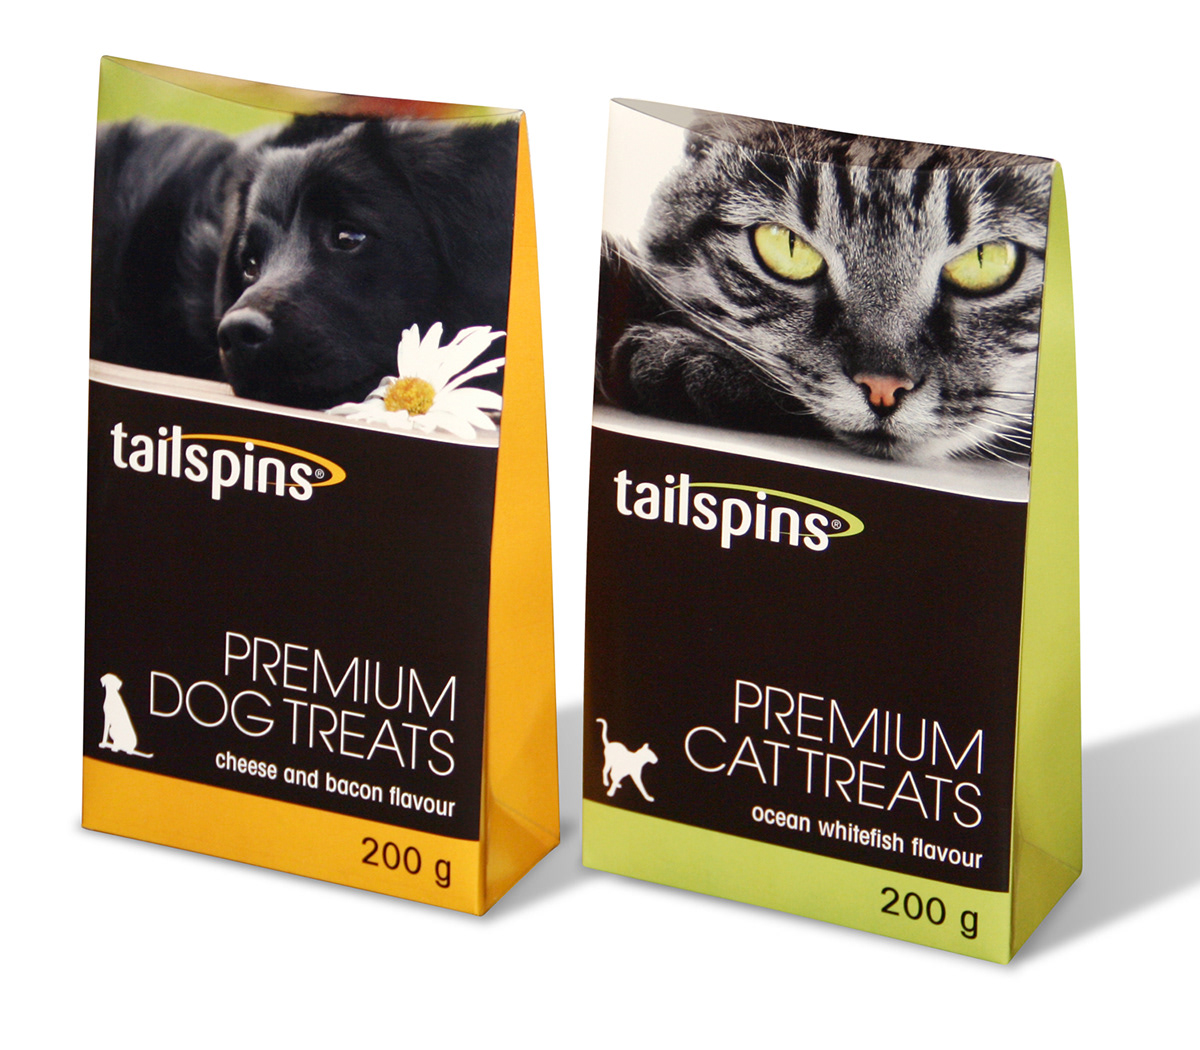 Pet Packaging Design Concepts